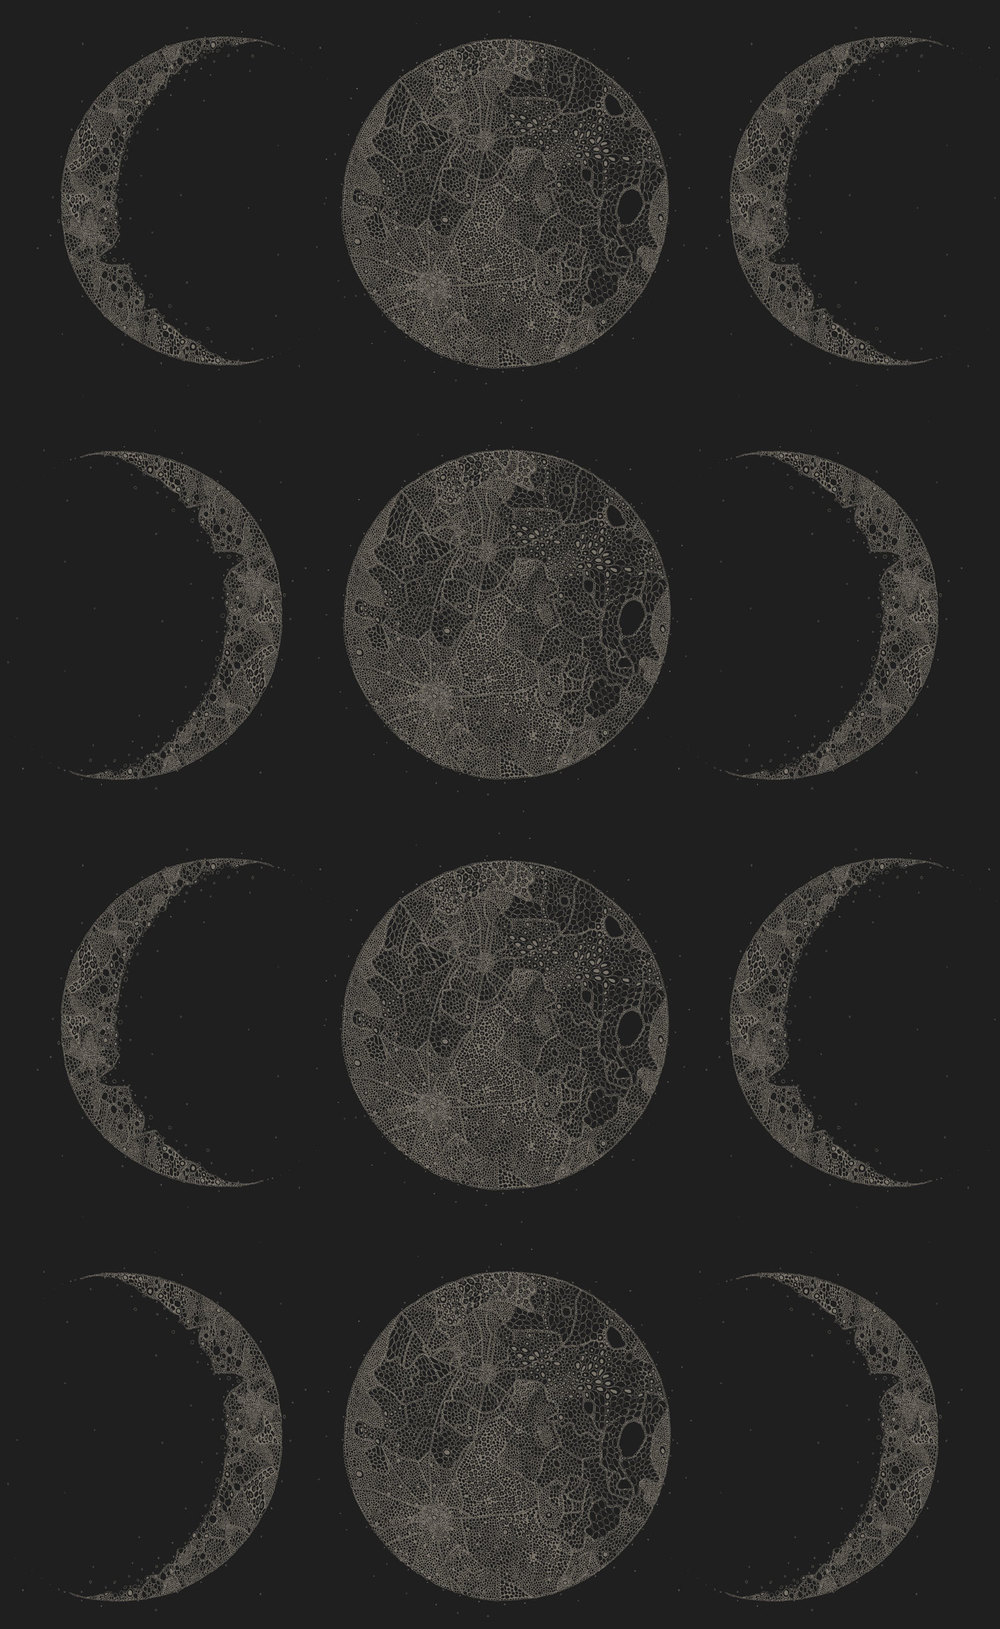 moon_crescent_full_black.jpg